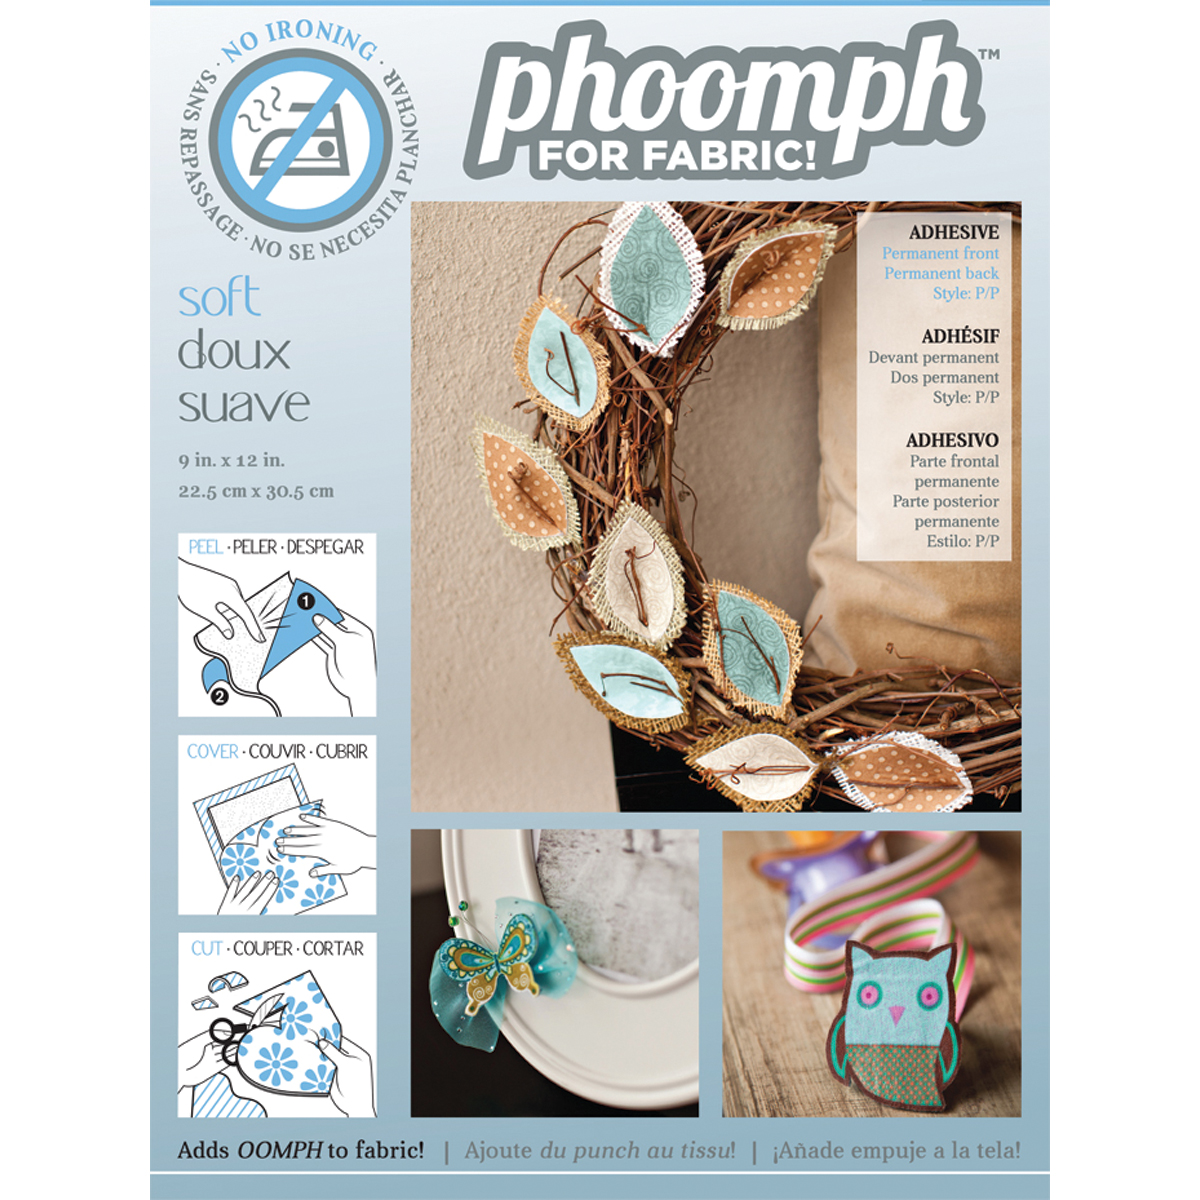 Coats Thread & Zippers Phoomph for Fabric, 9 by 12-Inch, Soft, White Multi-Colored